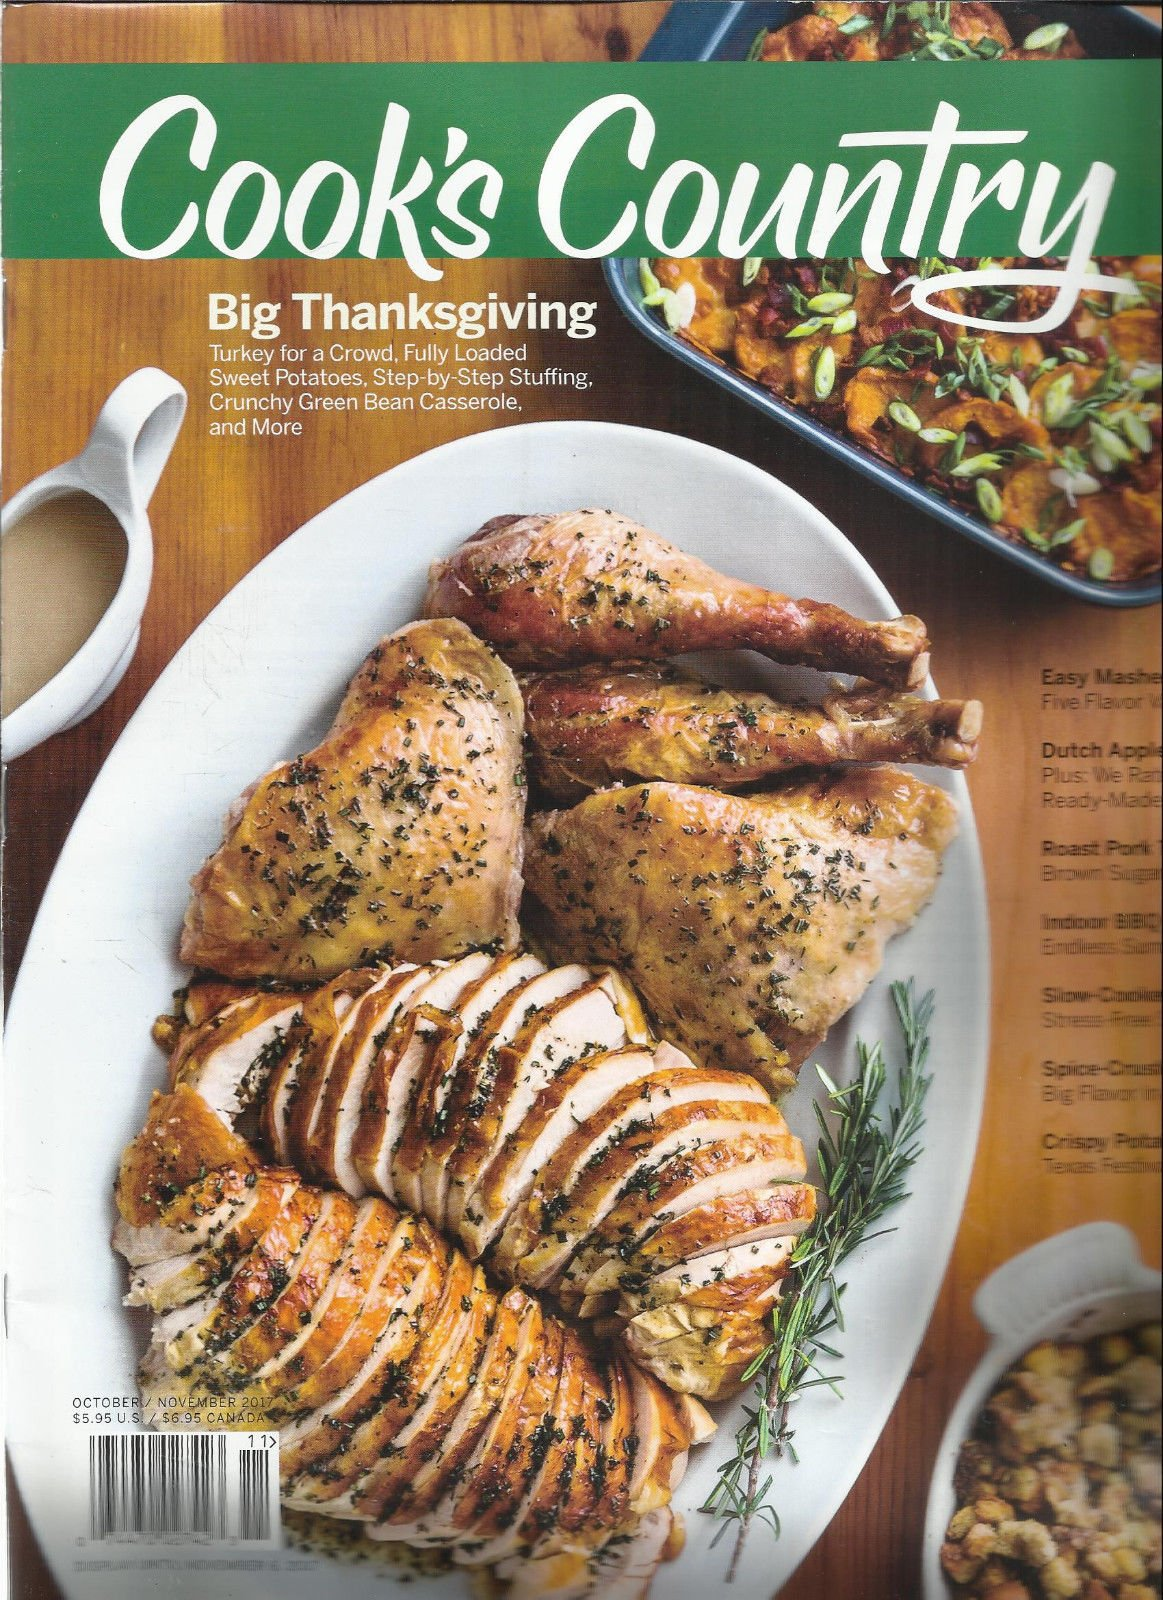 COOK'S COUNTRY MAGAZINE BIG THANKSGIVING, OCTOBER/NOVEMBER, 2017